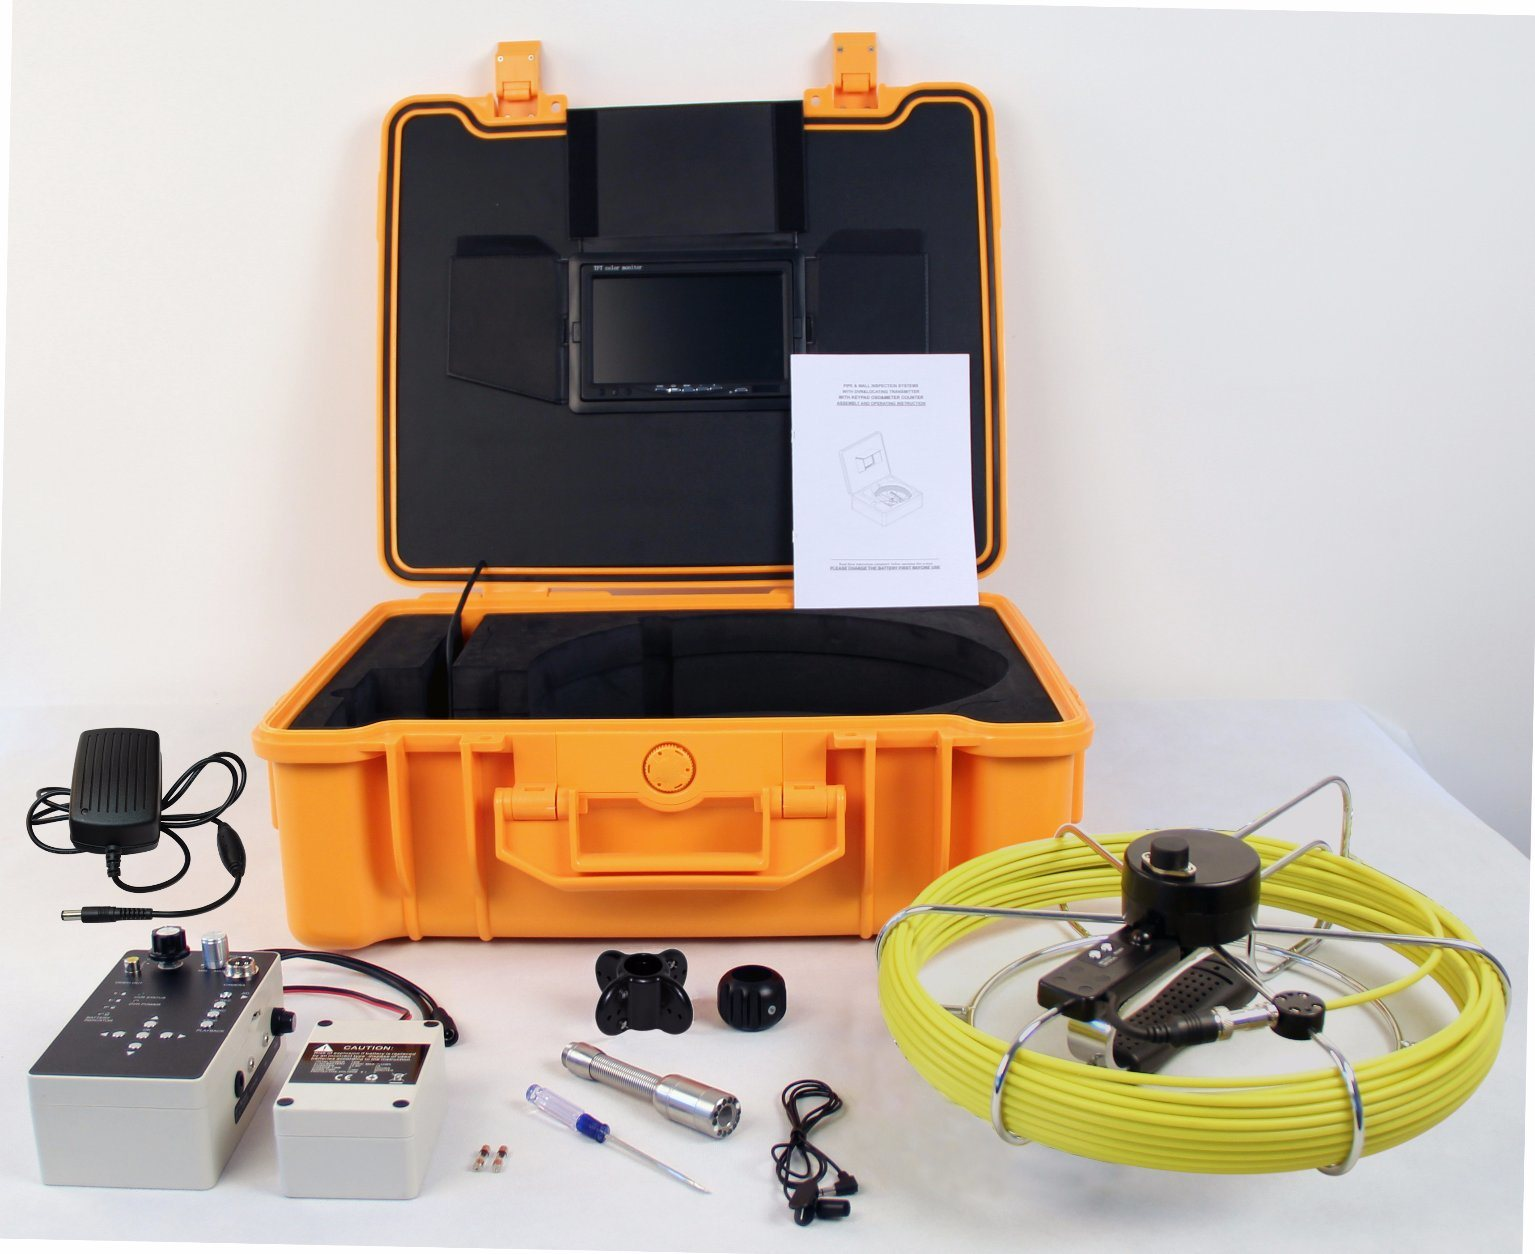 Cheap Sewer Pipe Inspection Camera with Meter-Counter